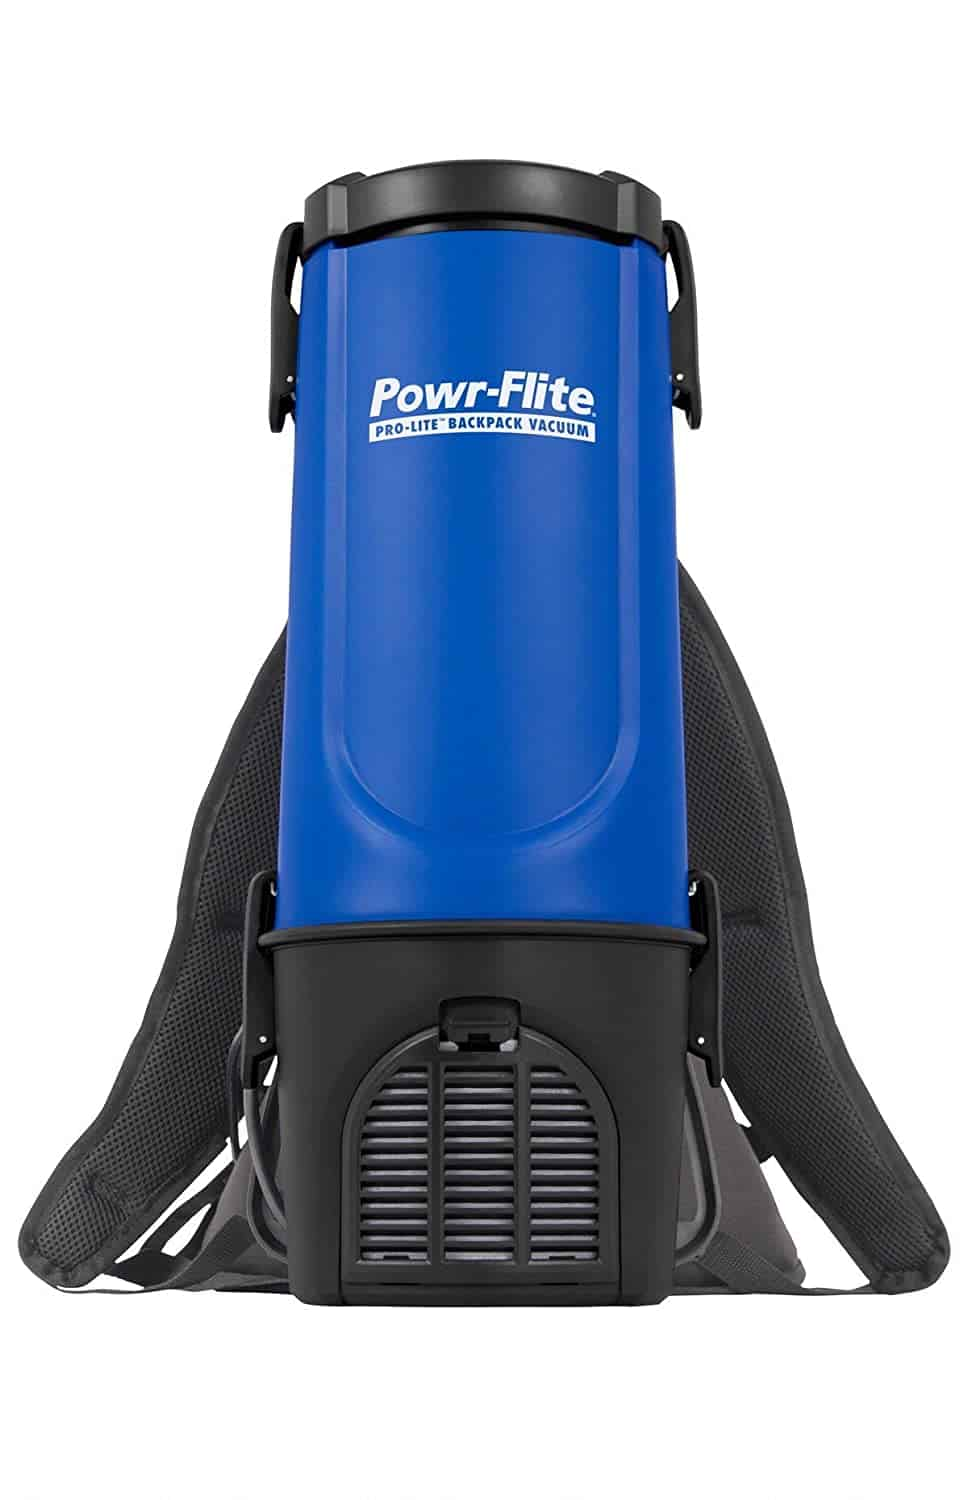 Best Lightweight Backpack Vacuum: Powr-Flite BP4S Pro-Lite